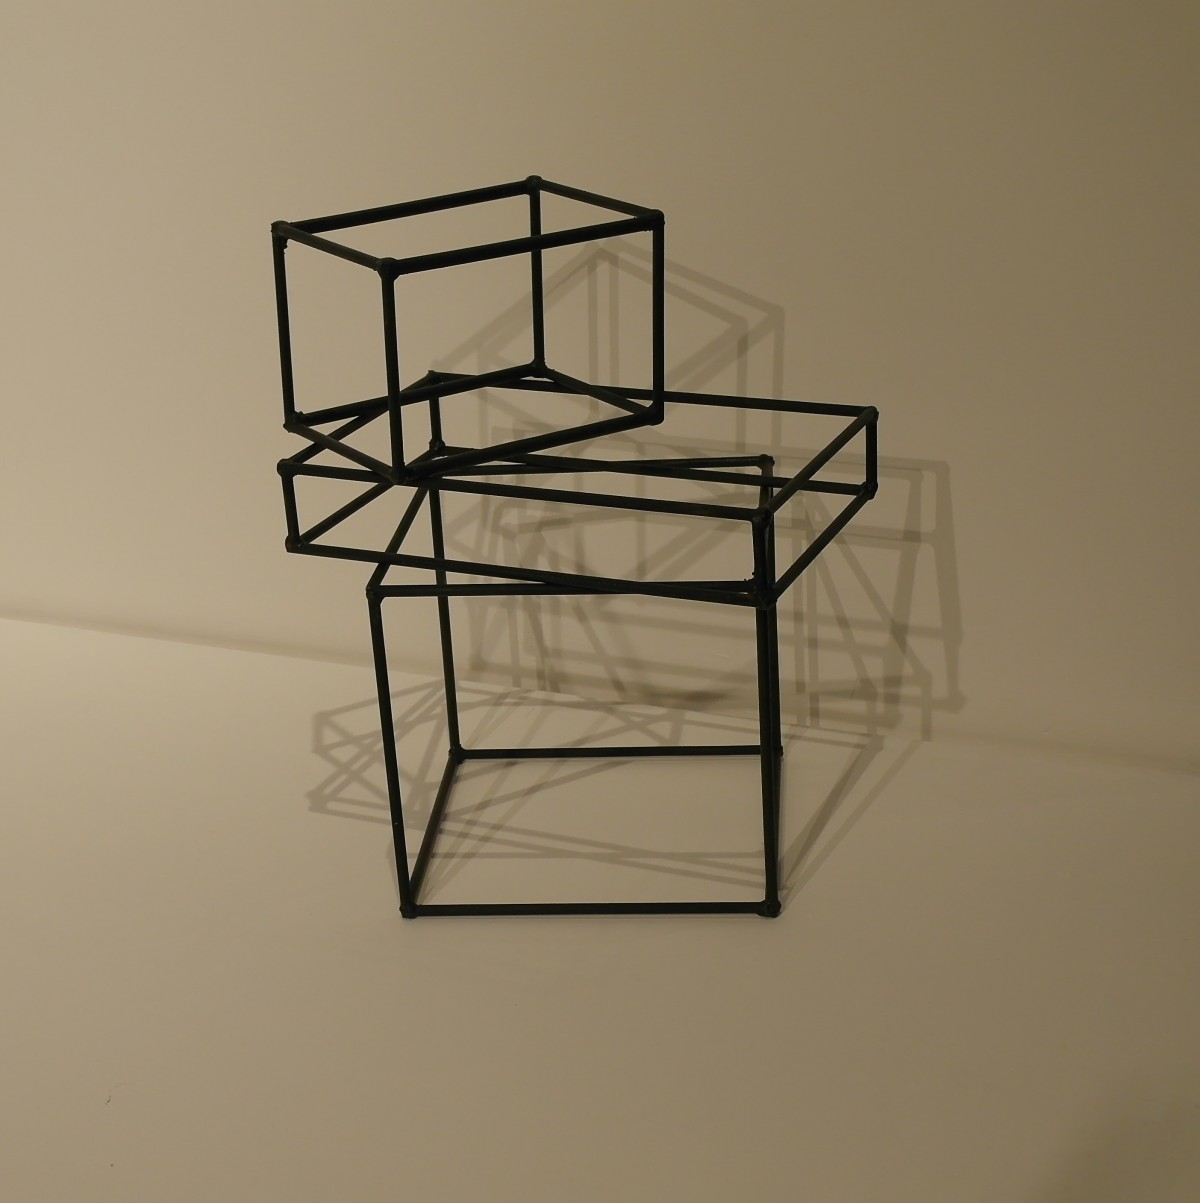 Free Images  table abstract chair glass museum frame